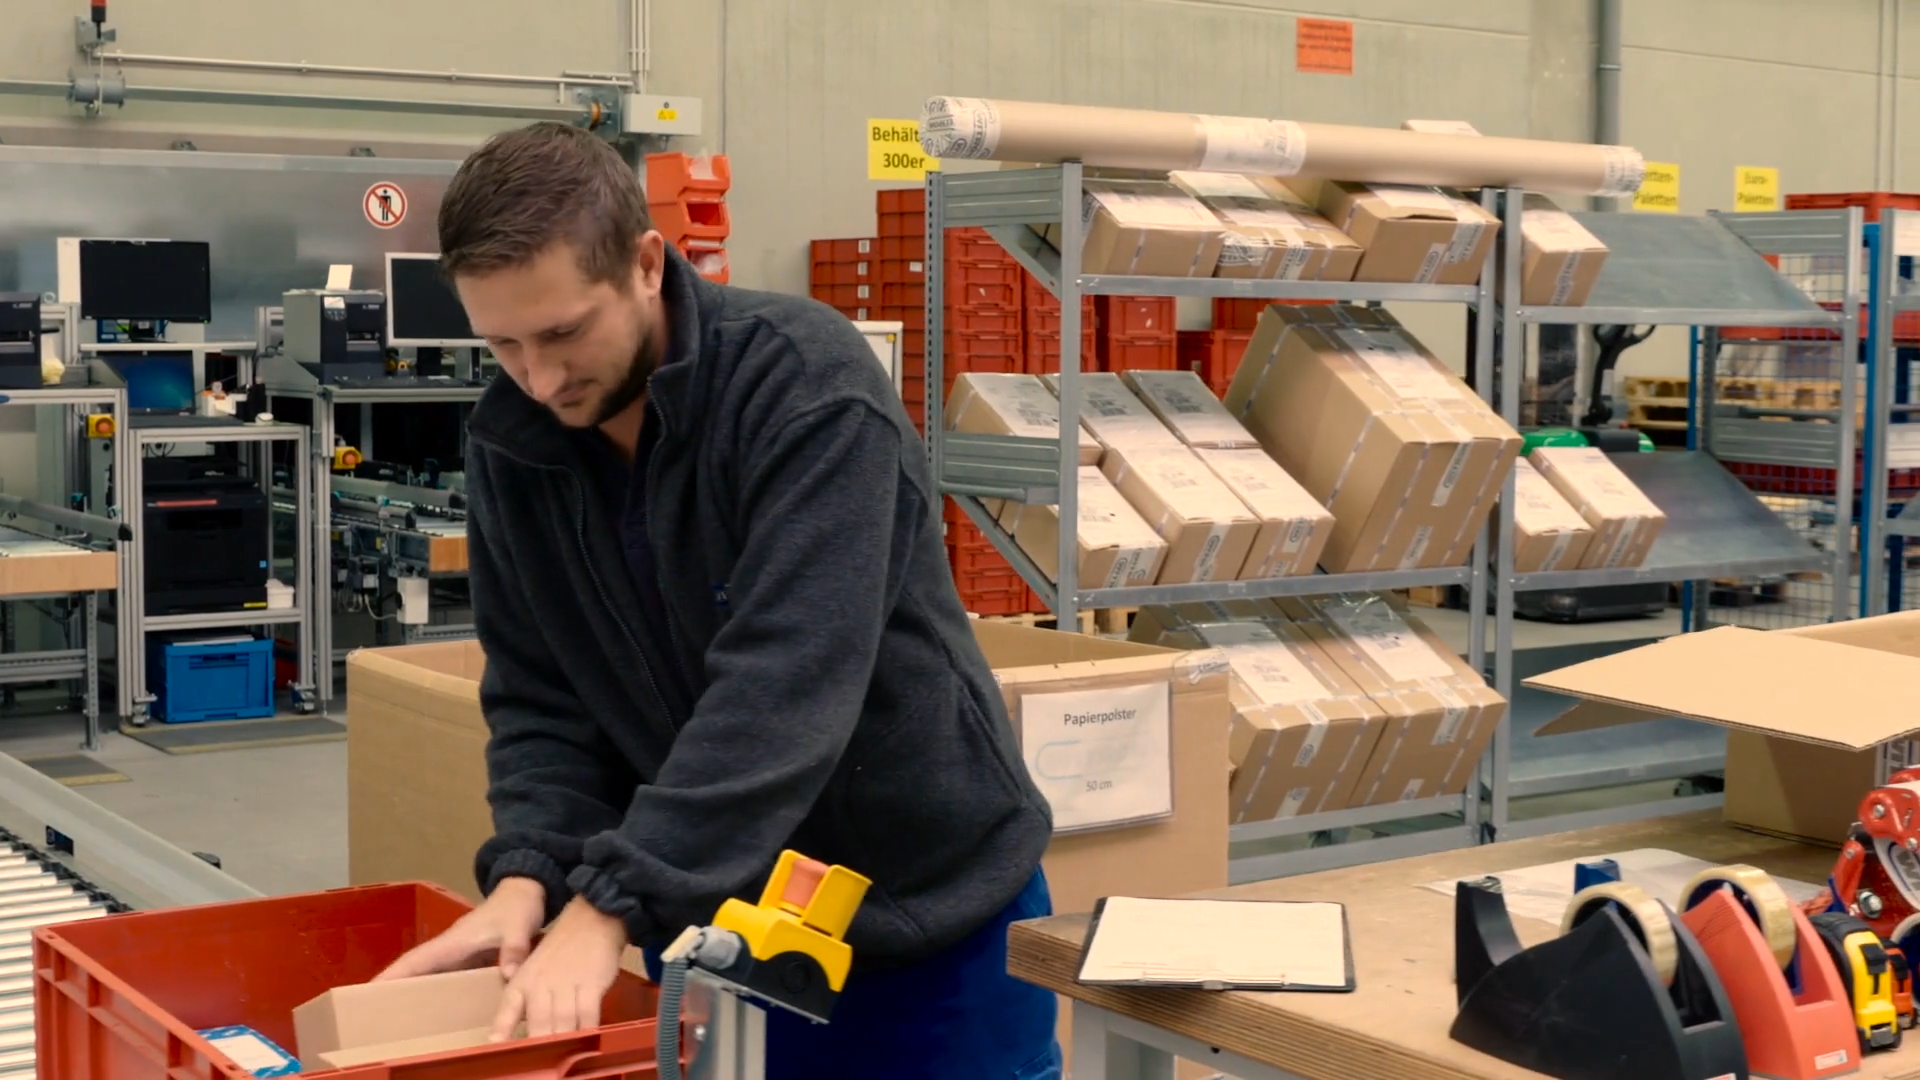 A man packs products at a high-tech distribution center